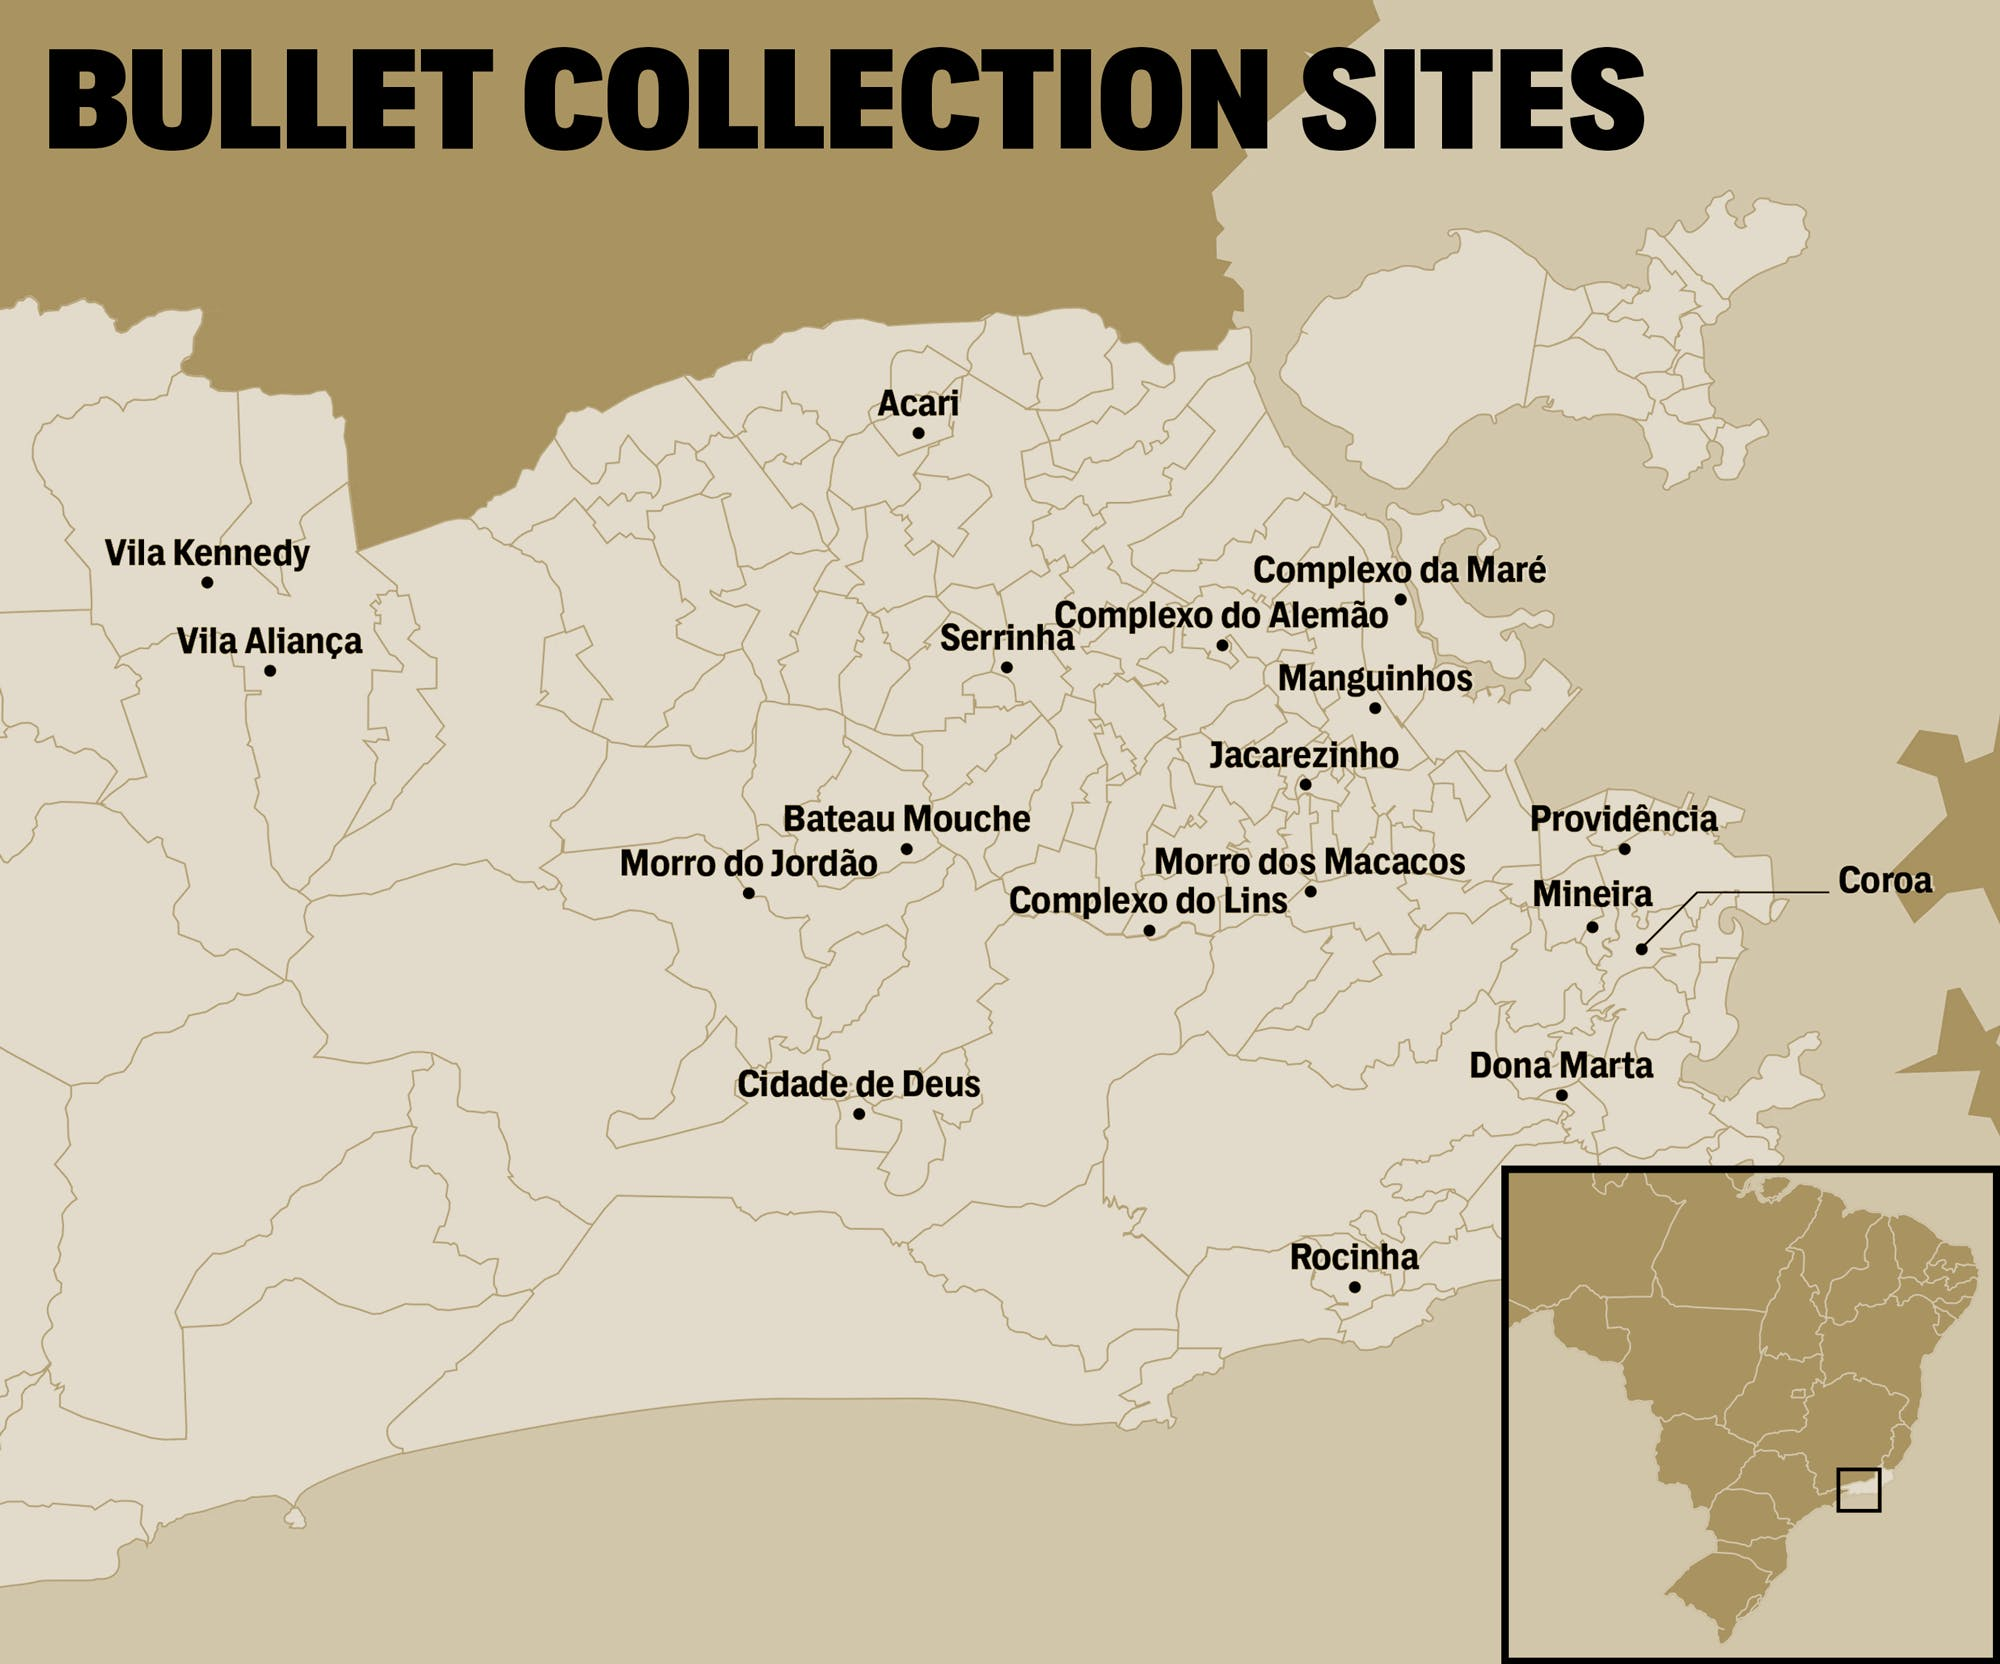 bullet-collection-sites-1576276241